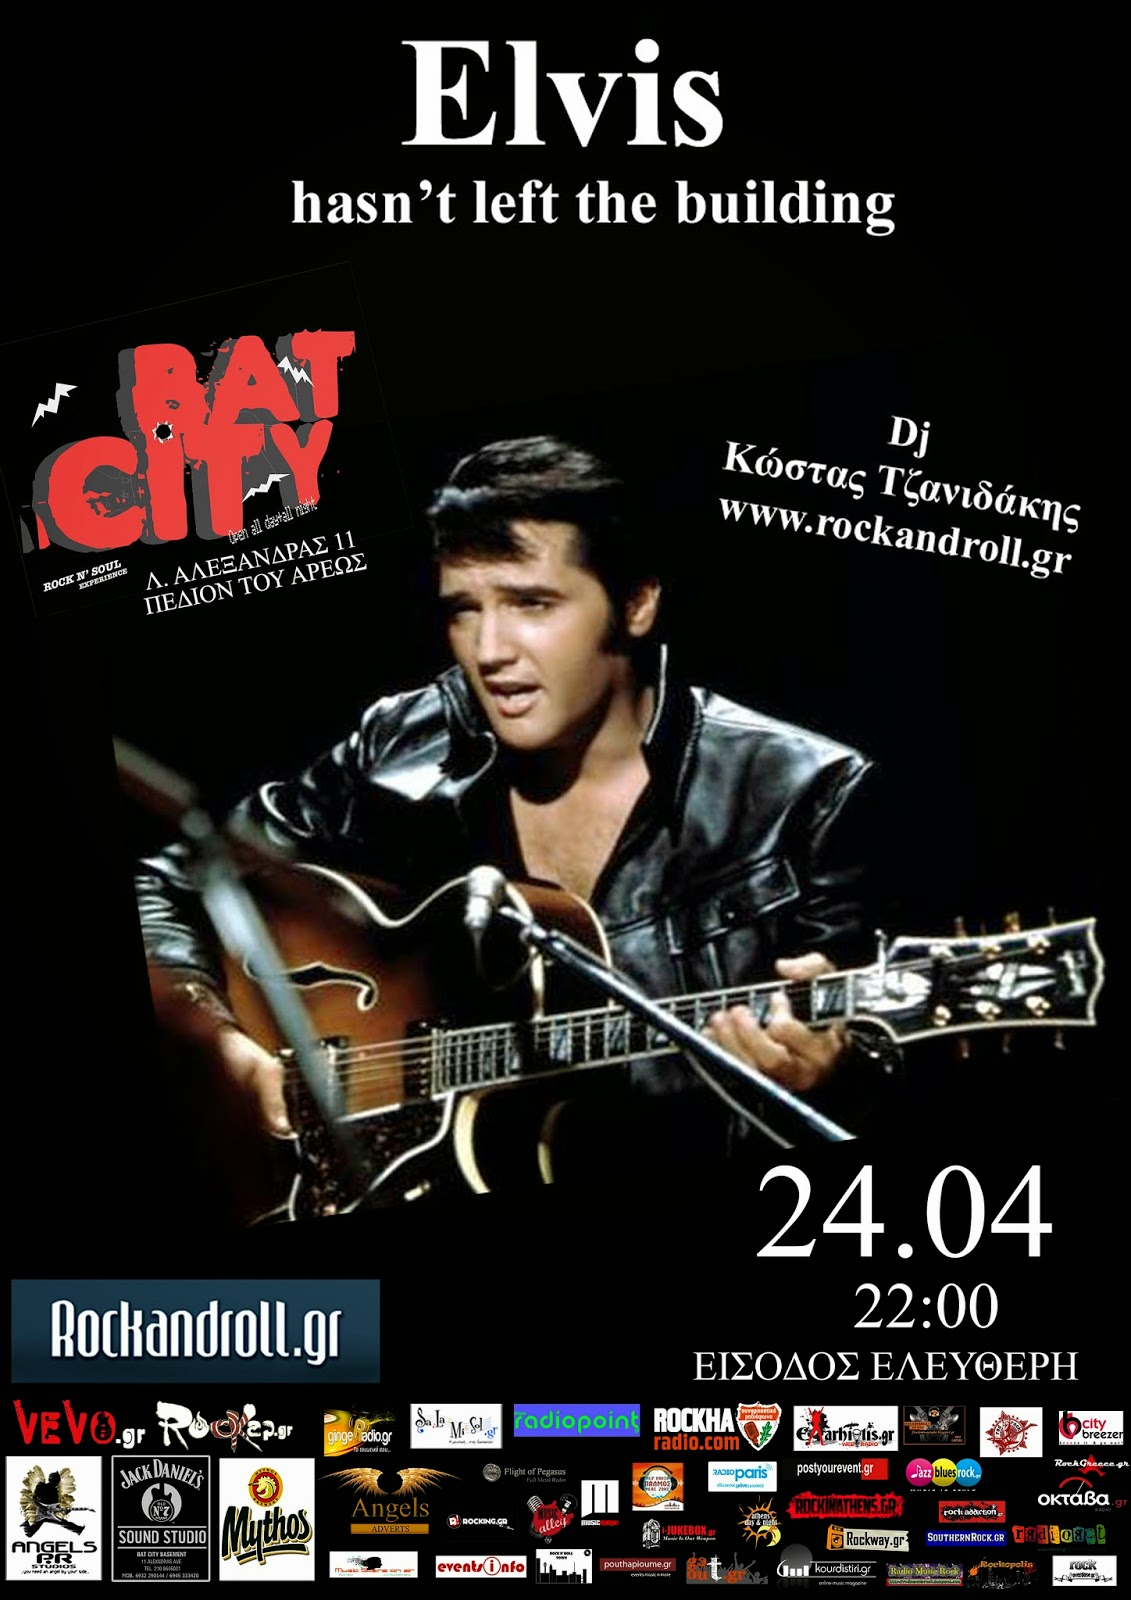 elvis-hasn-t-left-the-building-bat-city-pempti-24-apriliou